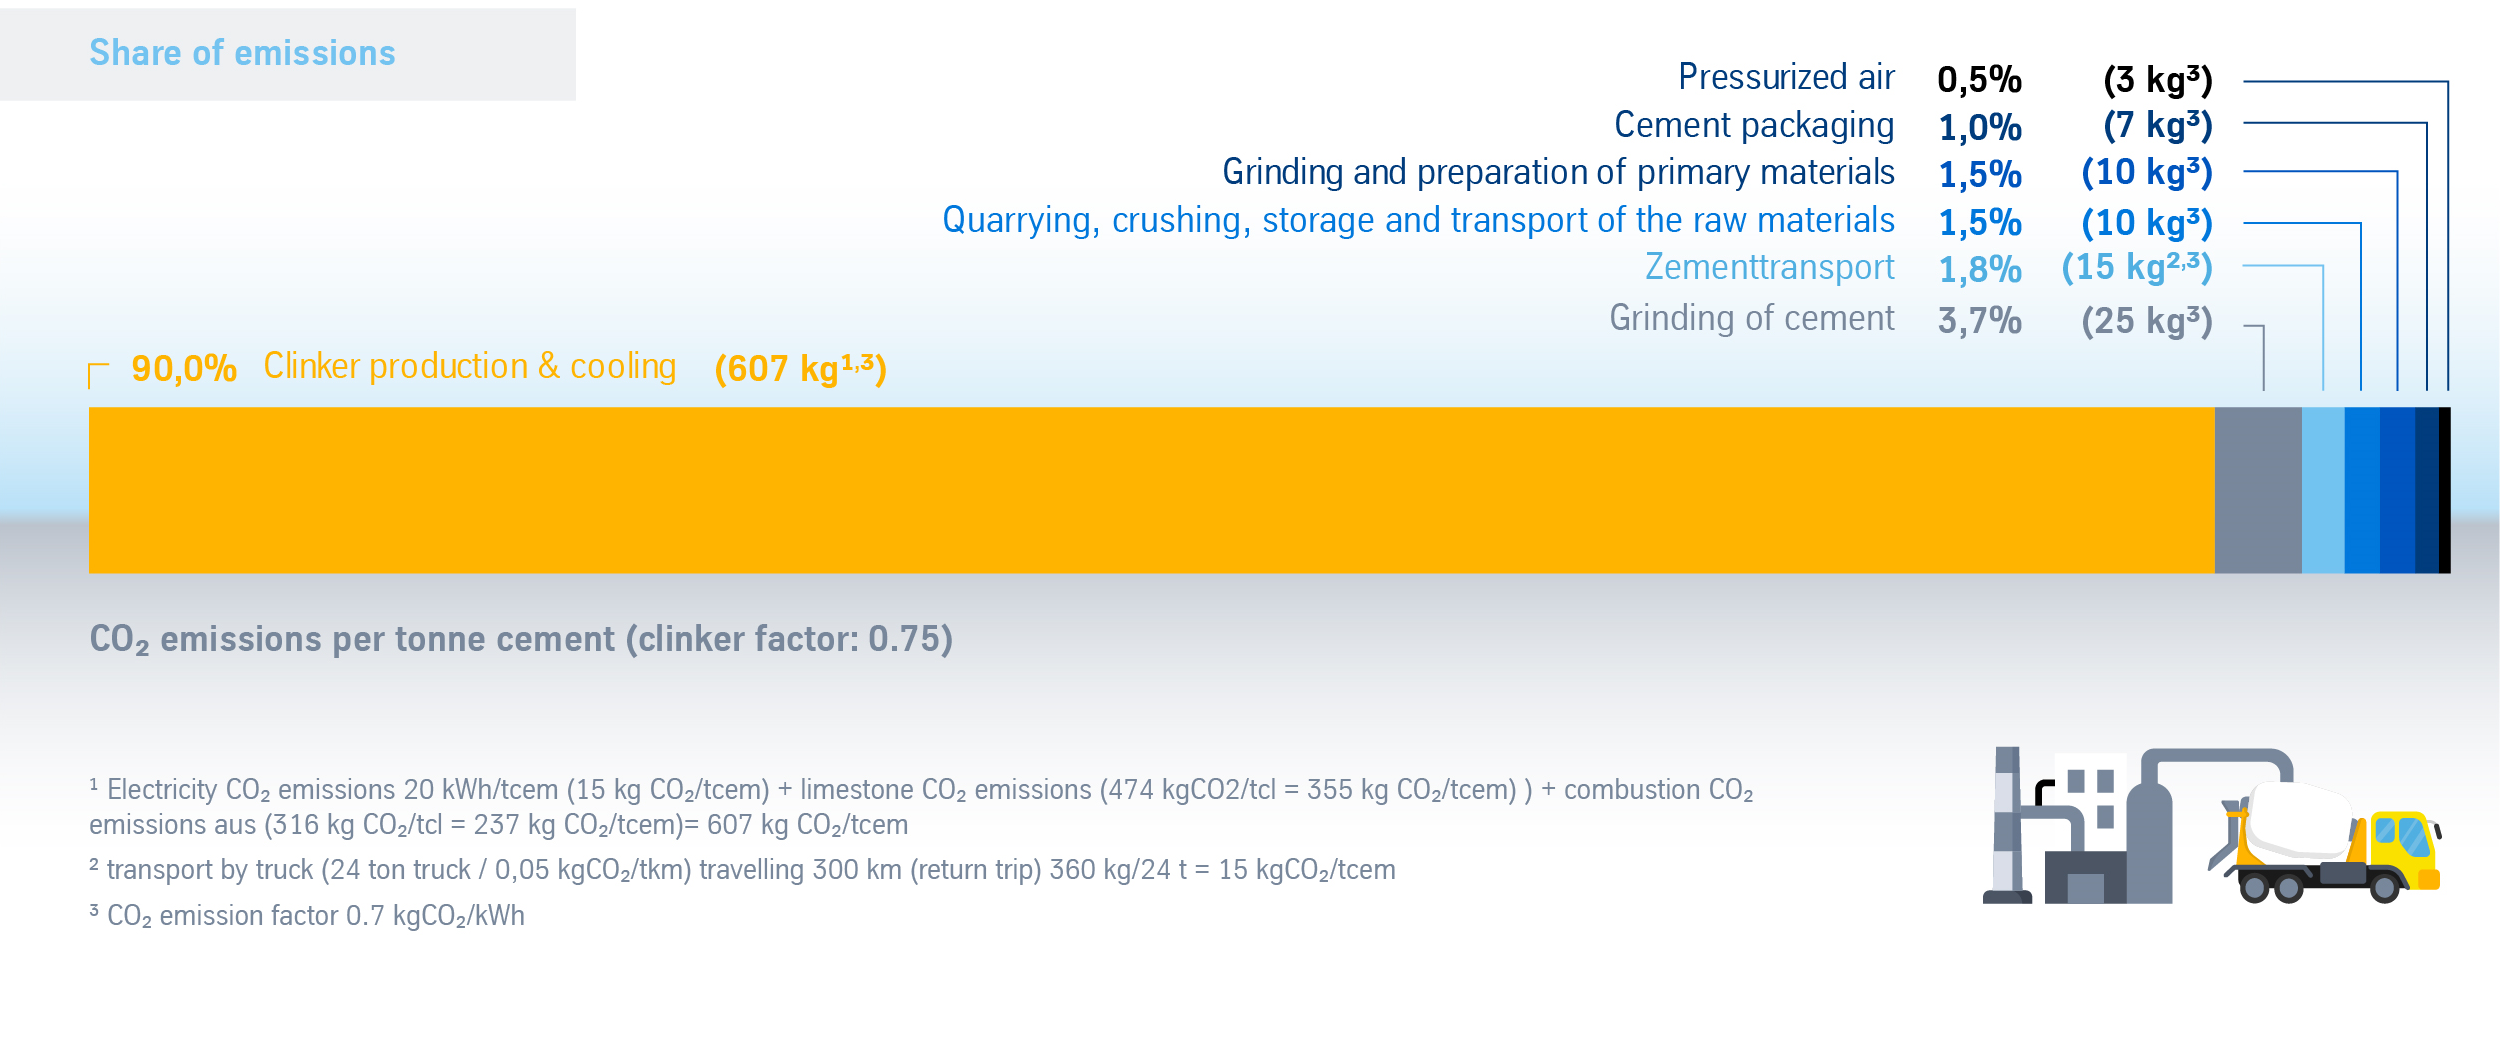 CO2 emissions in the cement production process